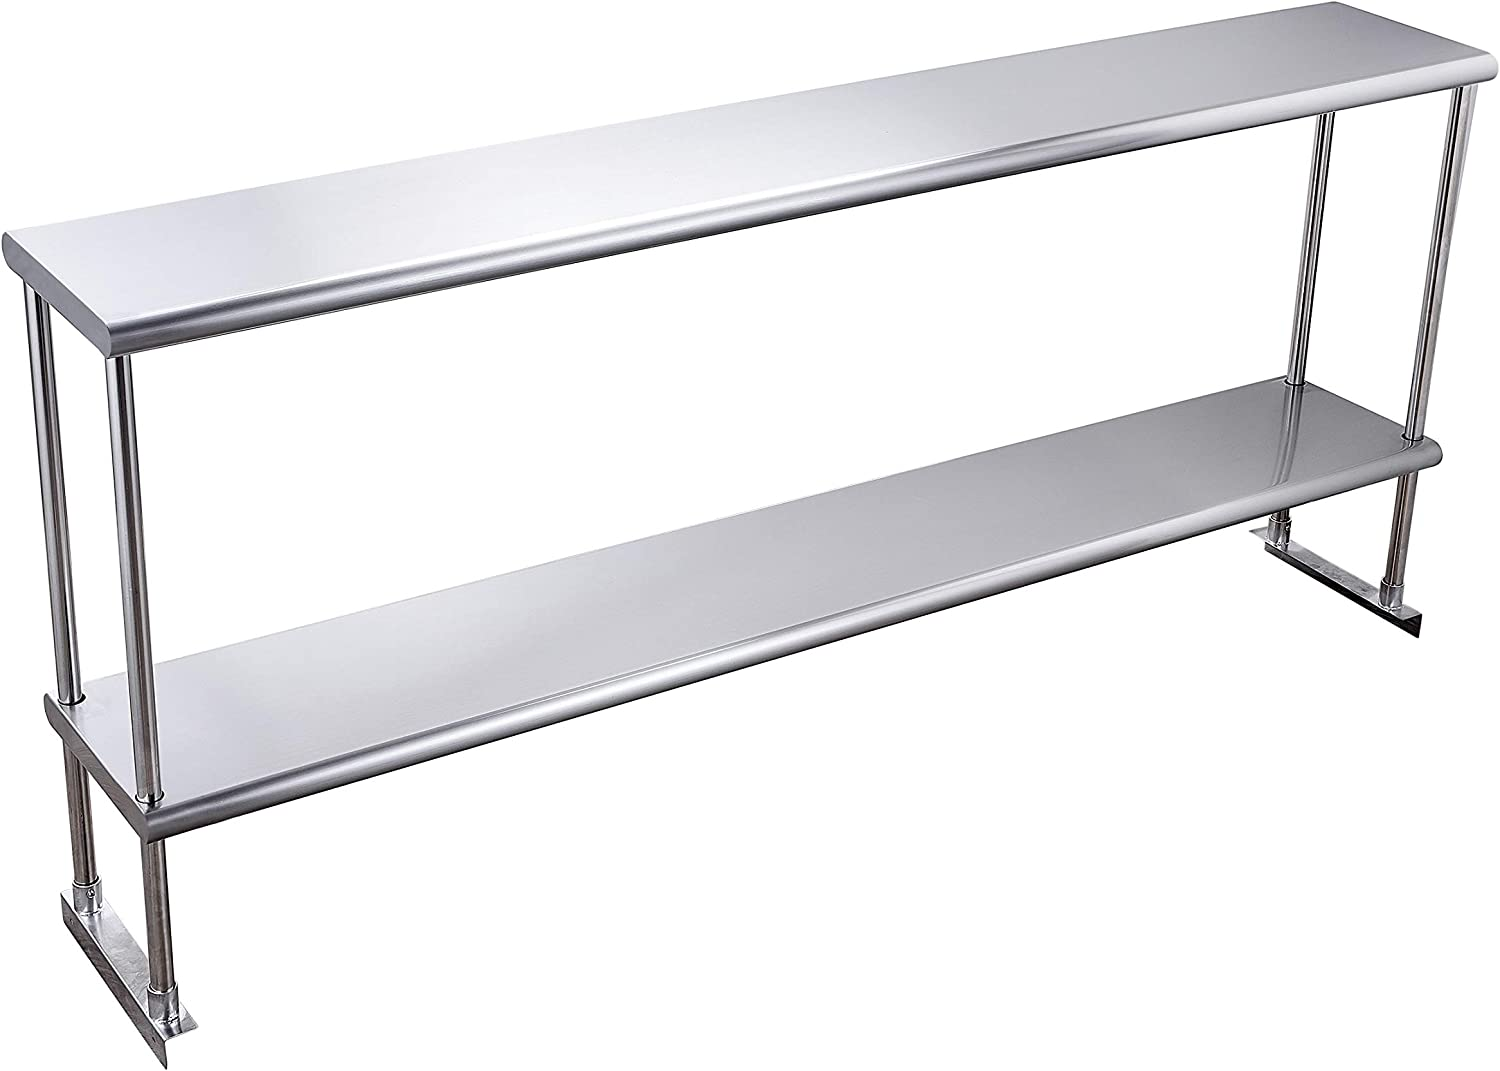 Hally Double Overshelf Max 61% OFF of Stainless Steel safety x 72'' 12'' Weight Cap